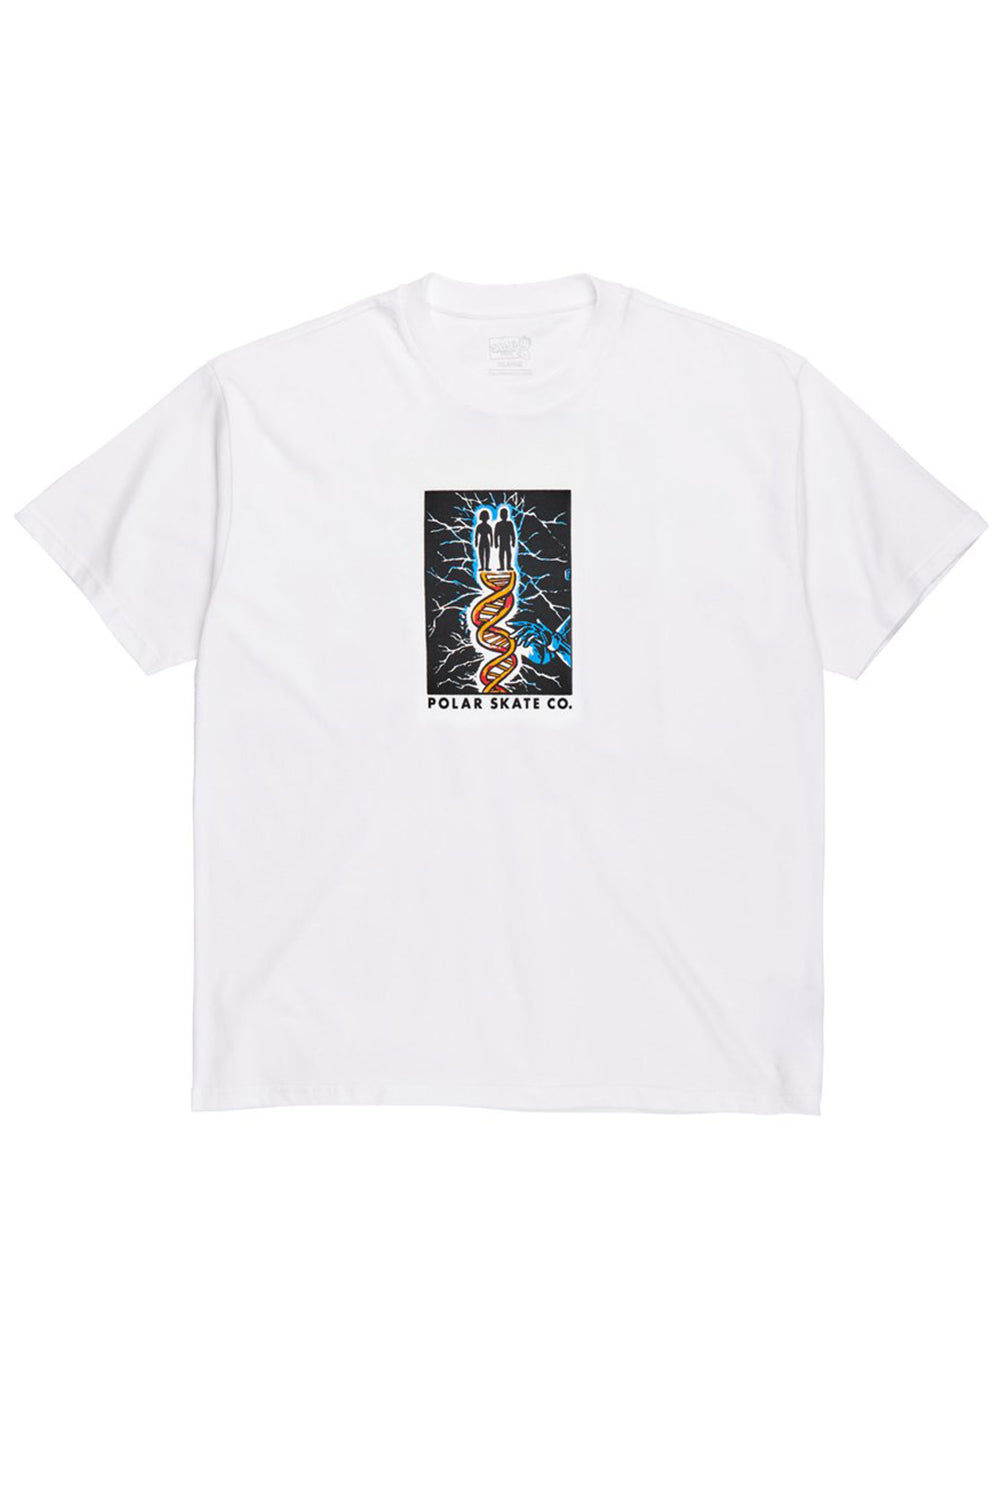 Polar Skate Co DNA Tee - White | Shop Polar Skate Co Online